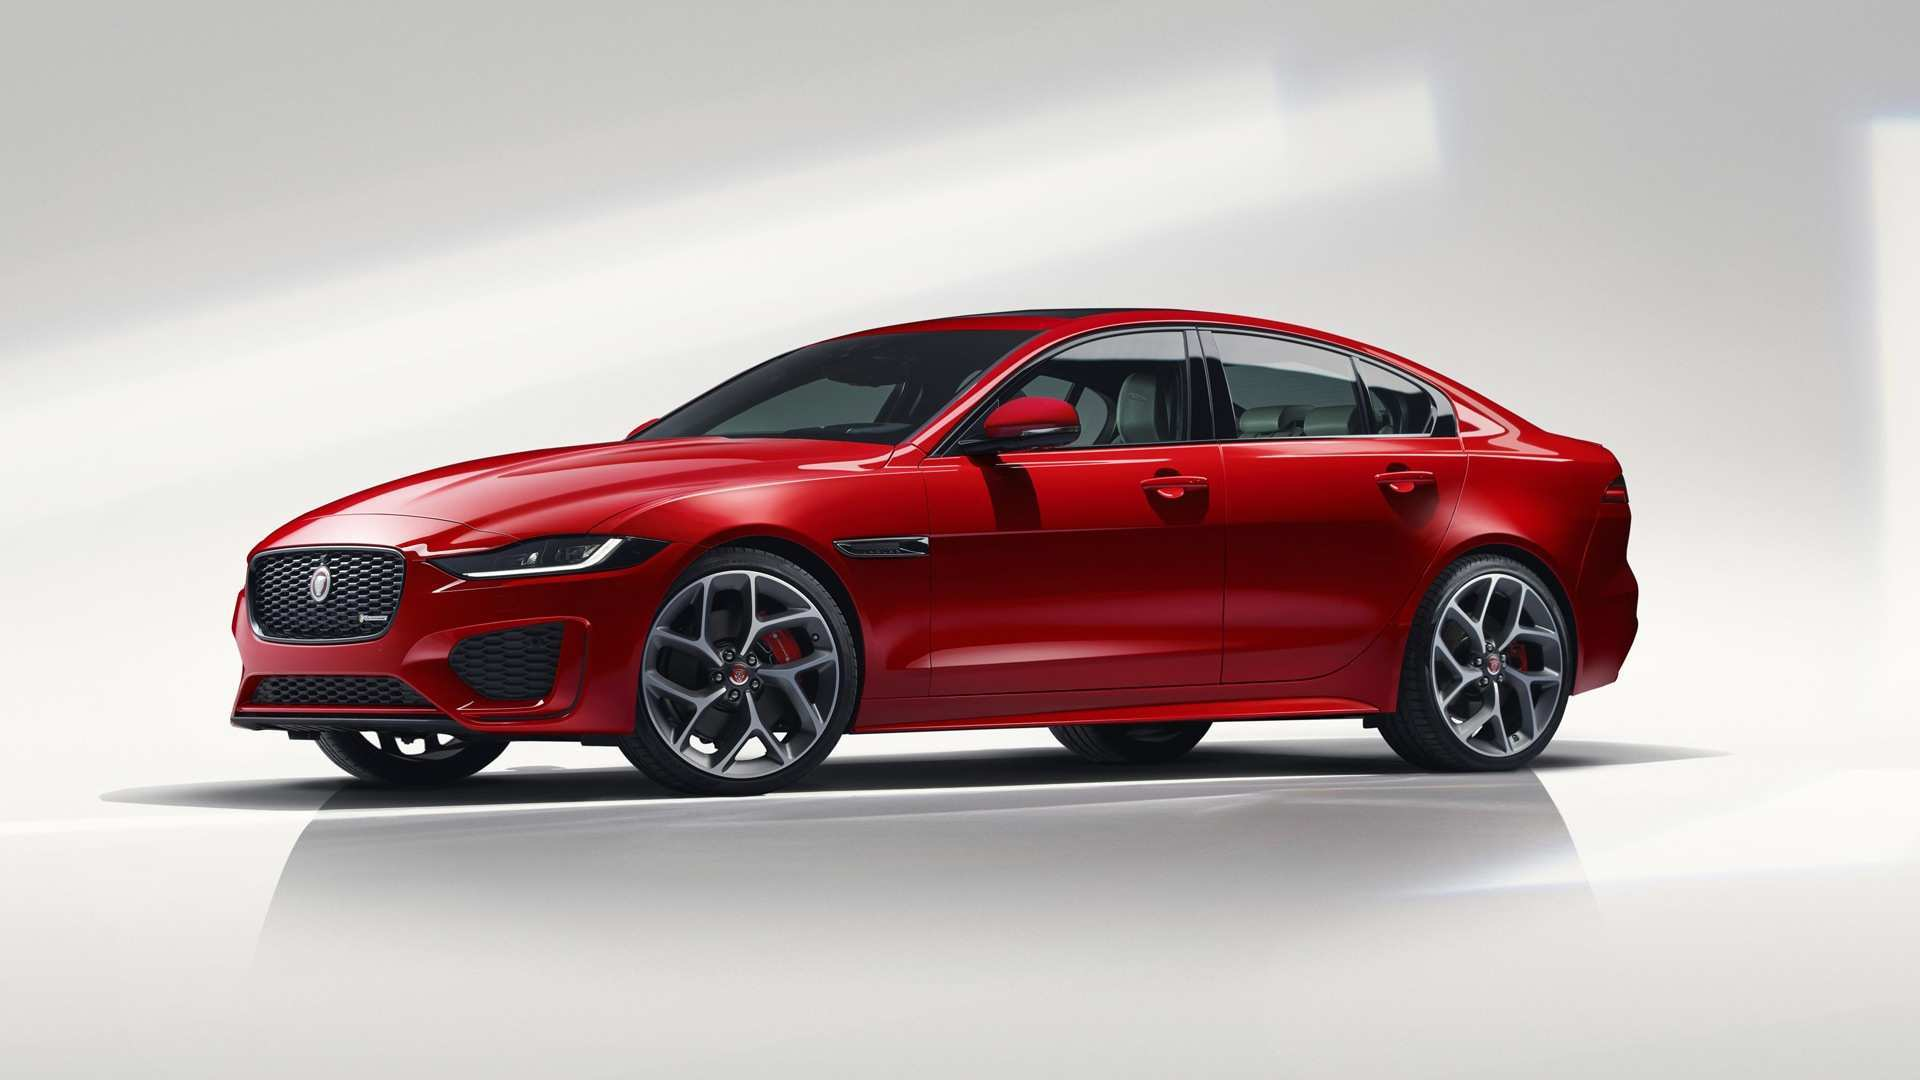 81 A Jaguar Xe 2020 Release Date And Concept